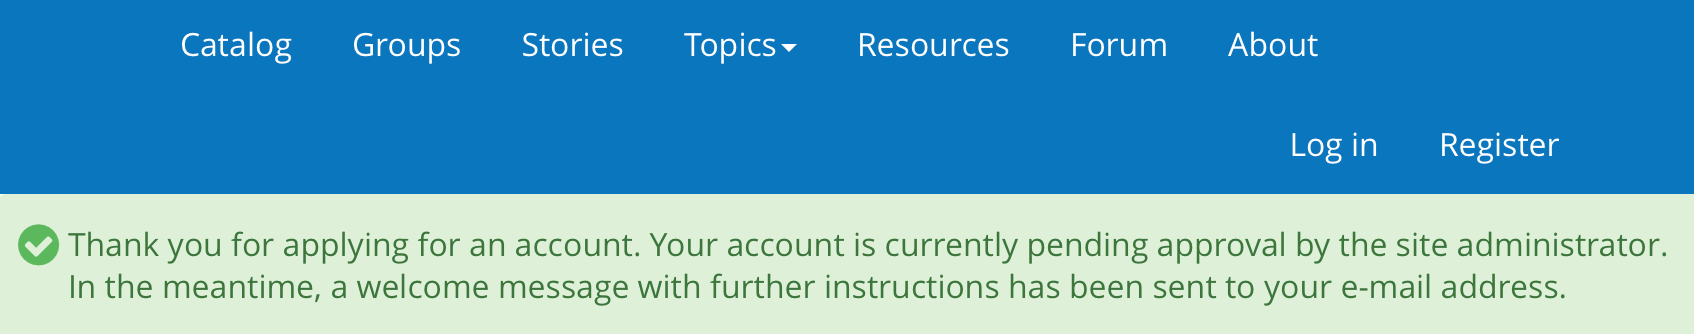 Account creation confirmation message